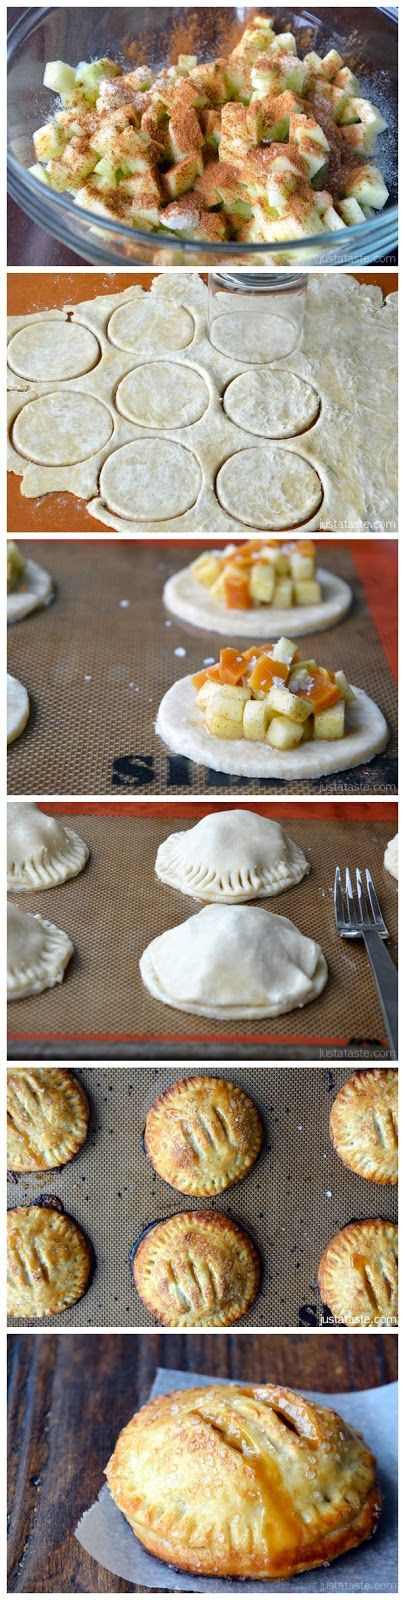 Salted Caramel Apple Hand Pies #recipe